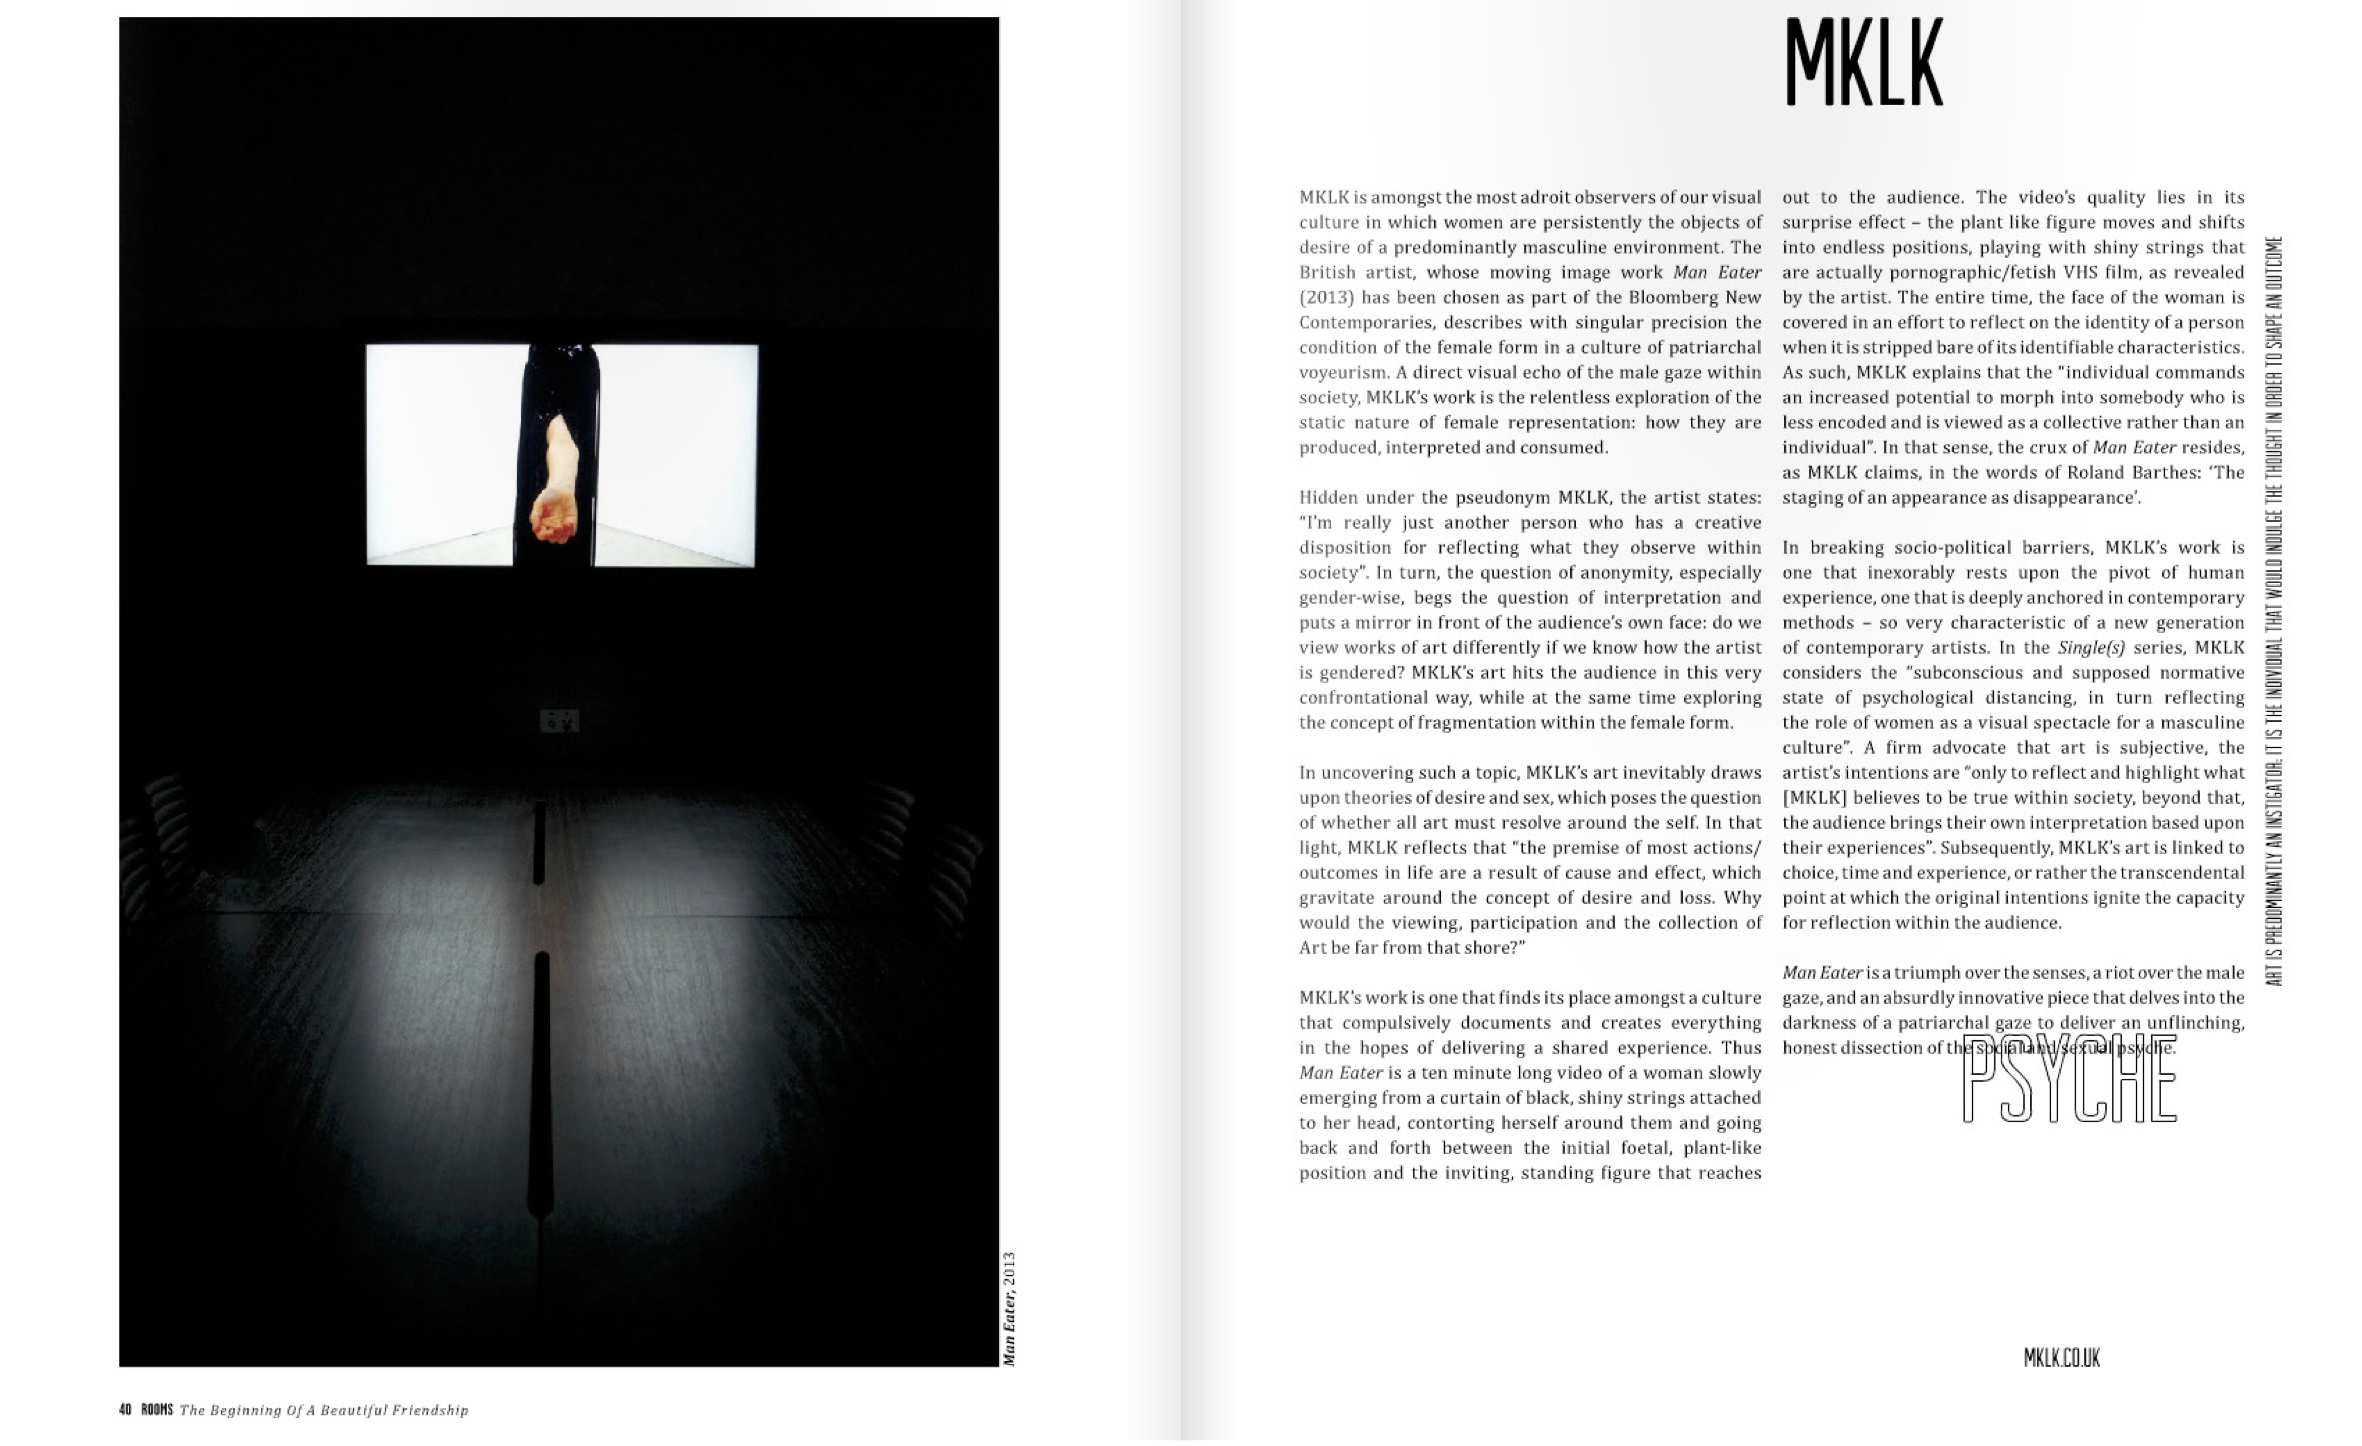 3ROOMS magazine _ A Contemporary New Generation